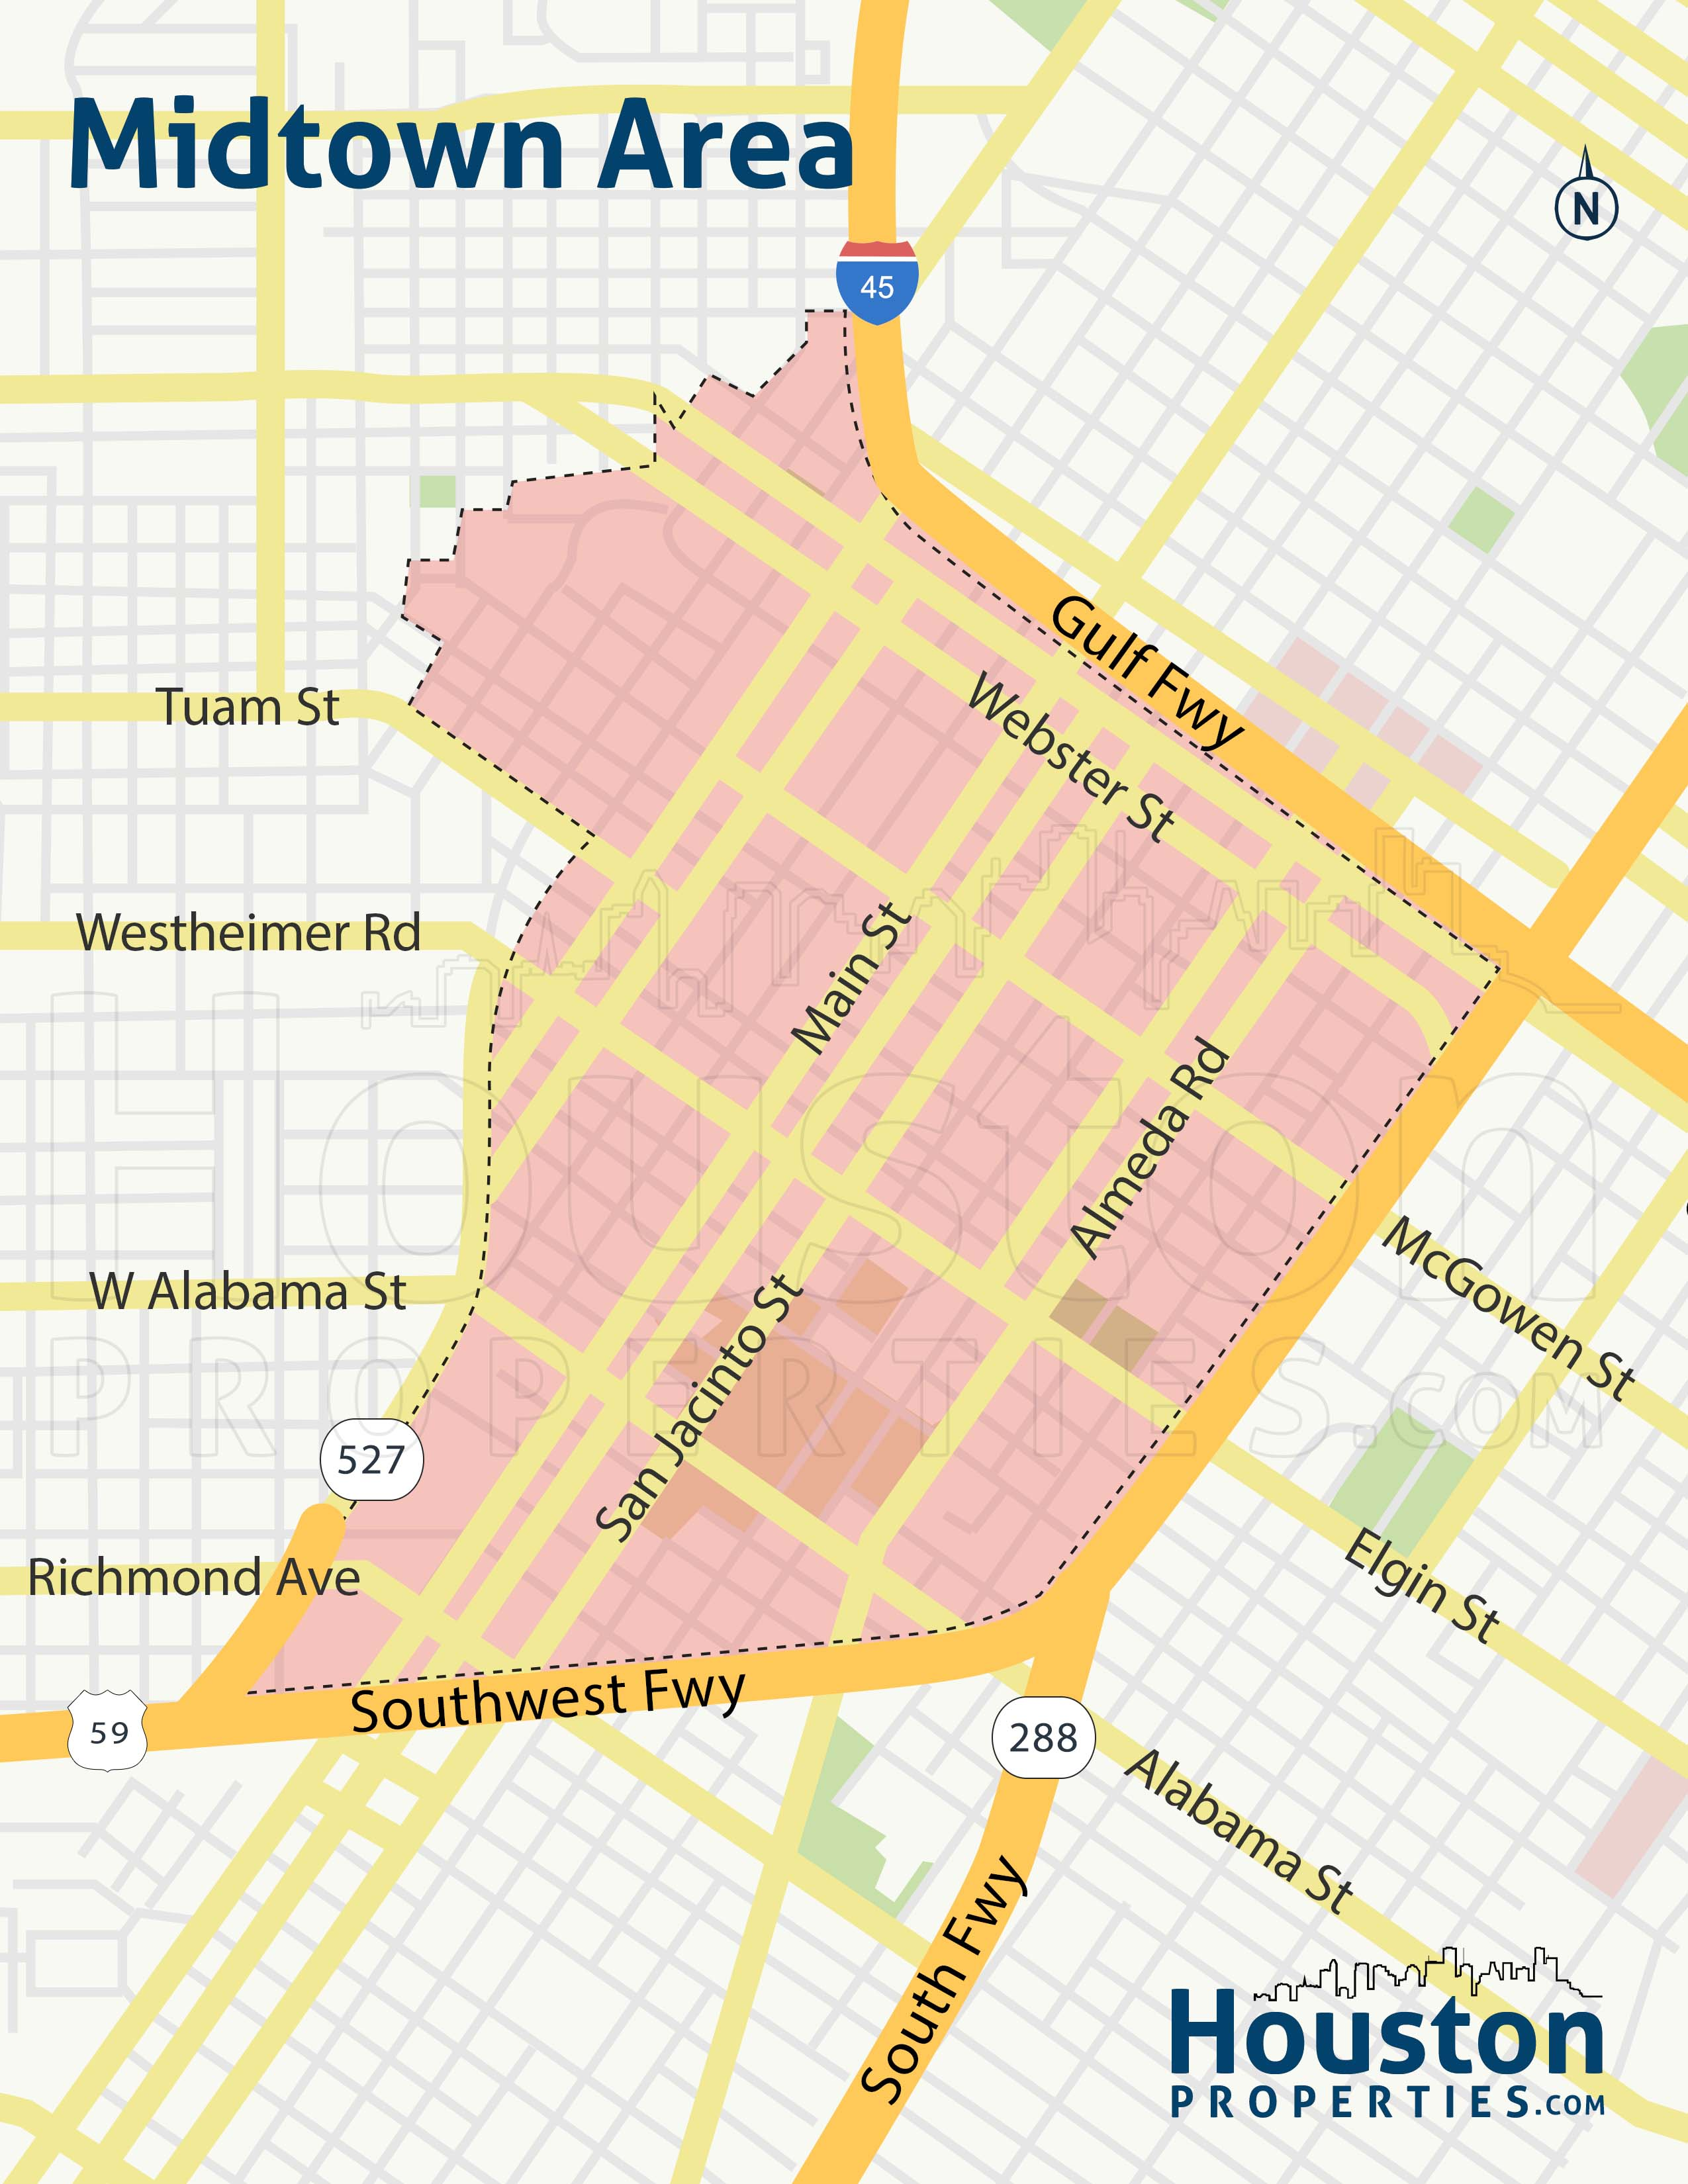 Midtown Houston Neighborhood Map